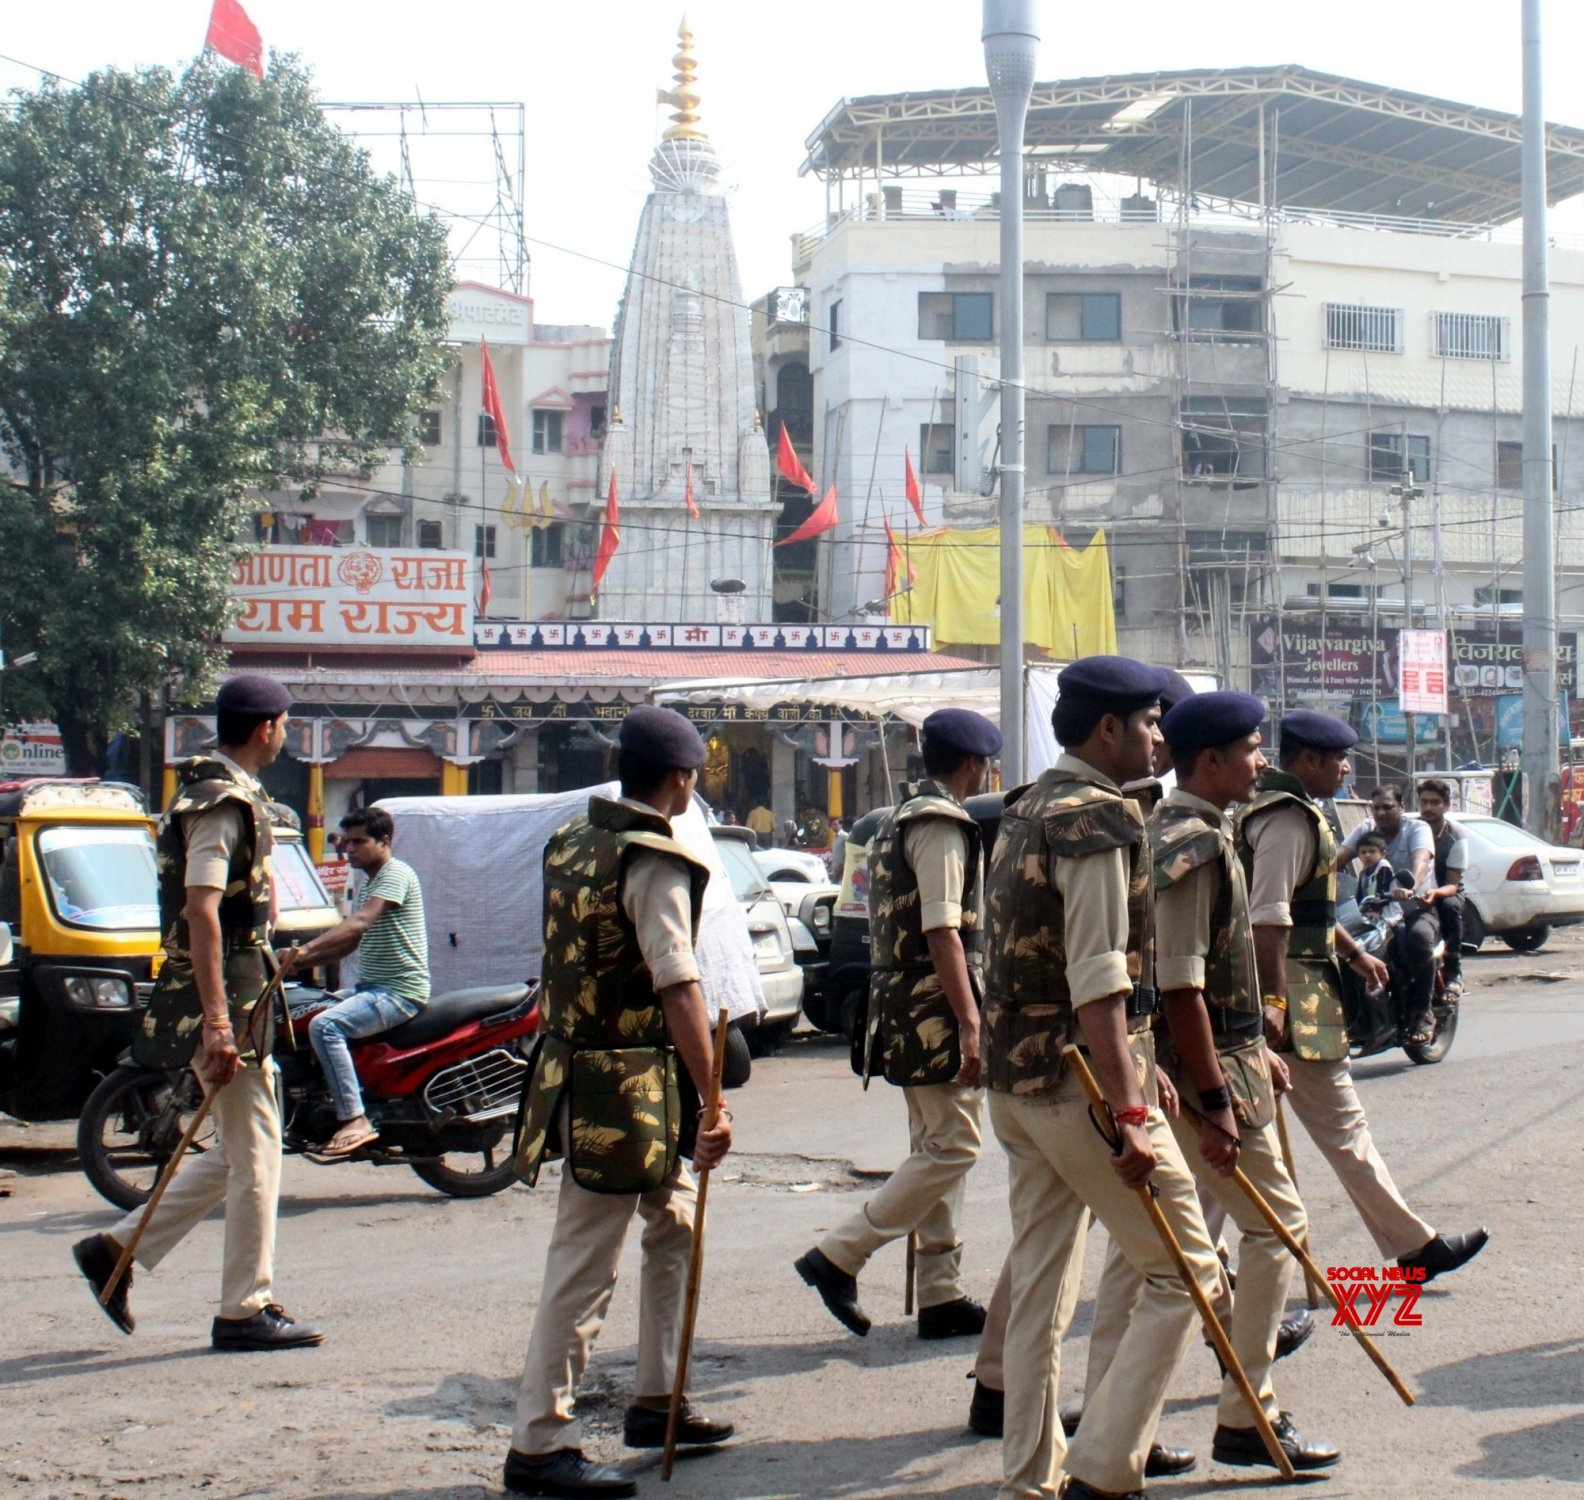 Bhopal: Ayodhya verdict - Prohibitory orders clamped in Bhopal #Gallery